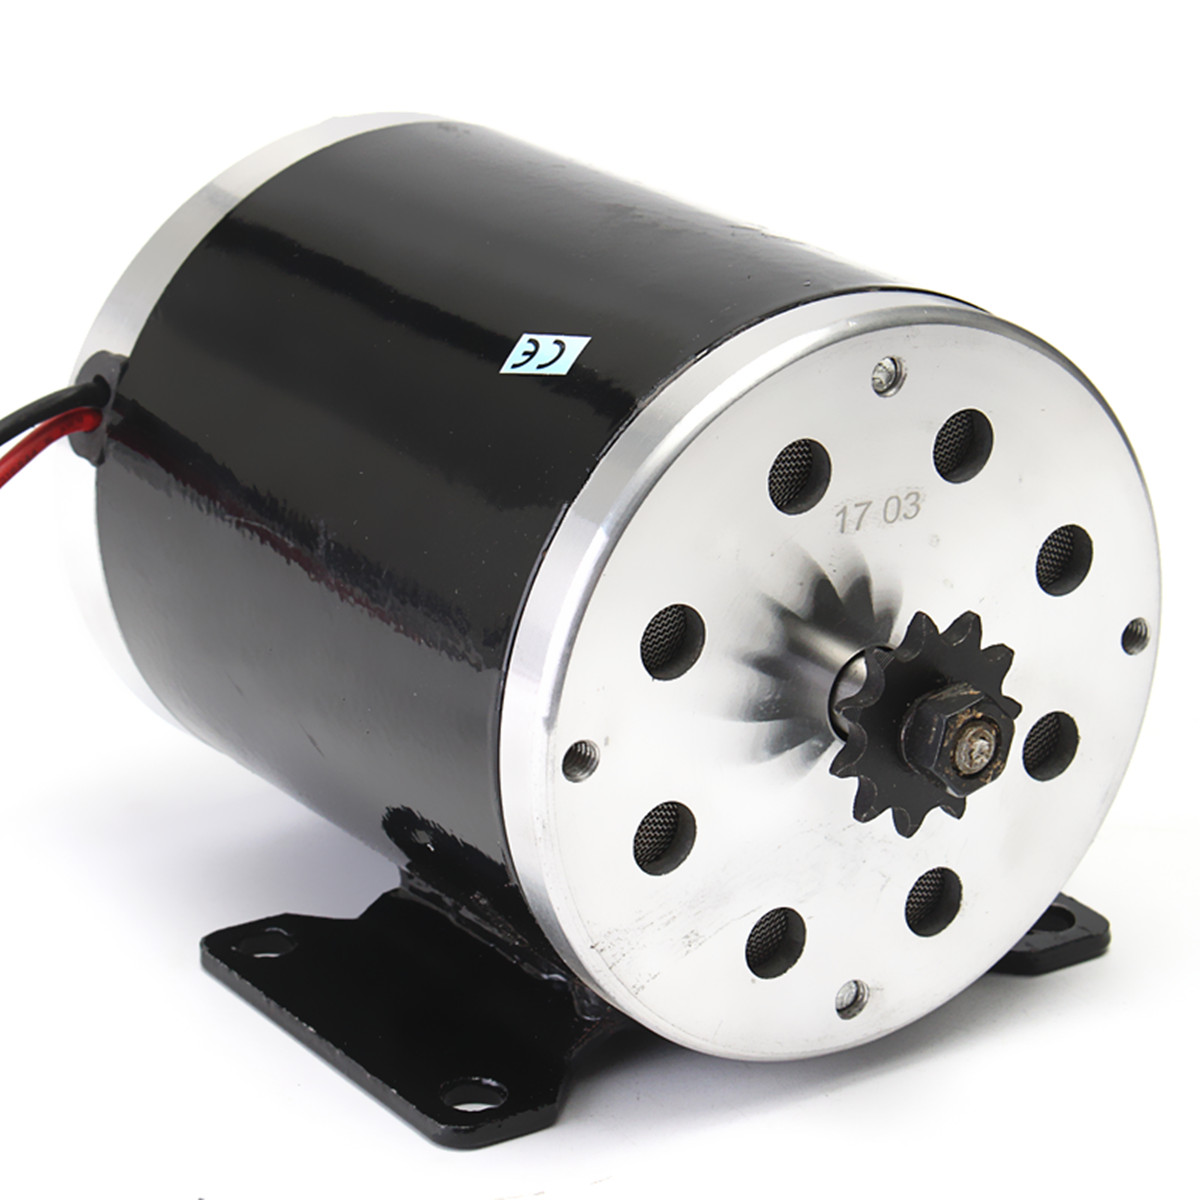 36V/48V 500W MY1020 High Speed Electric Brushed Motor For Electric Scooter E-Bike Electric Bicycle Motorcycle Accessories Part36V/48V 500W MY1020 High Speed Electric Brushed Motor For Electric Scooter E-Bike Electric Bicycle Motorcycle Accessories Part